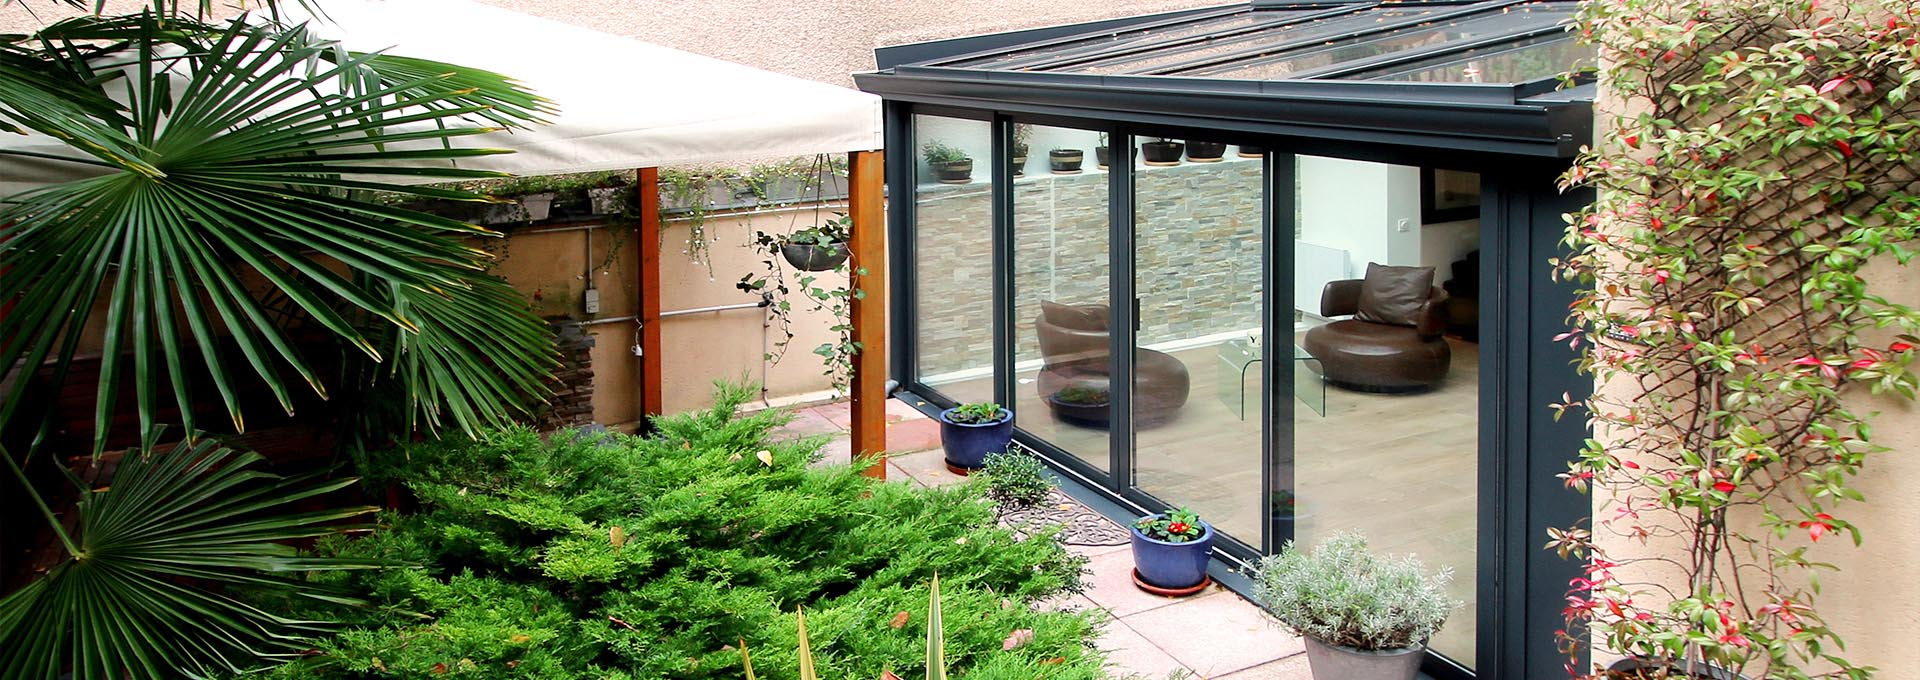 R novation v randa alu anthracite sur jardin zen 75019 paris for Veranda de jardin